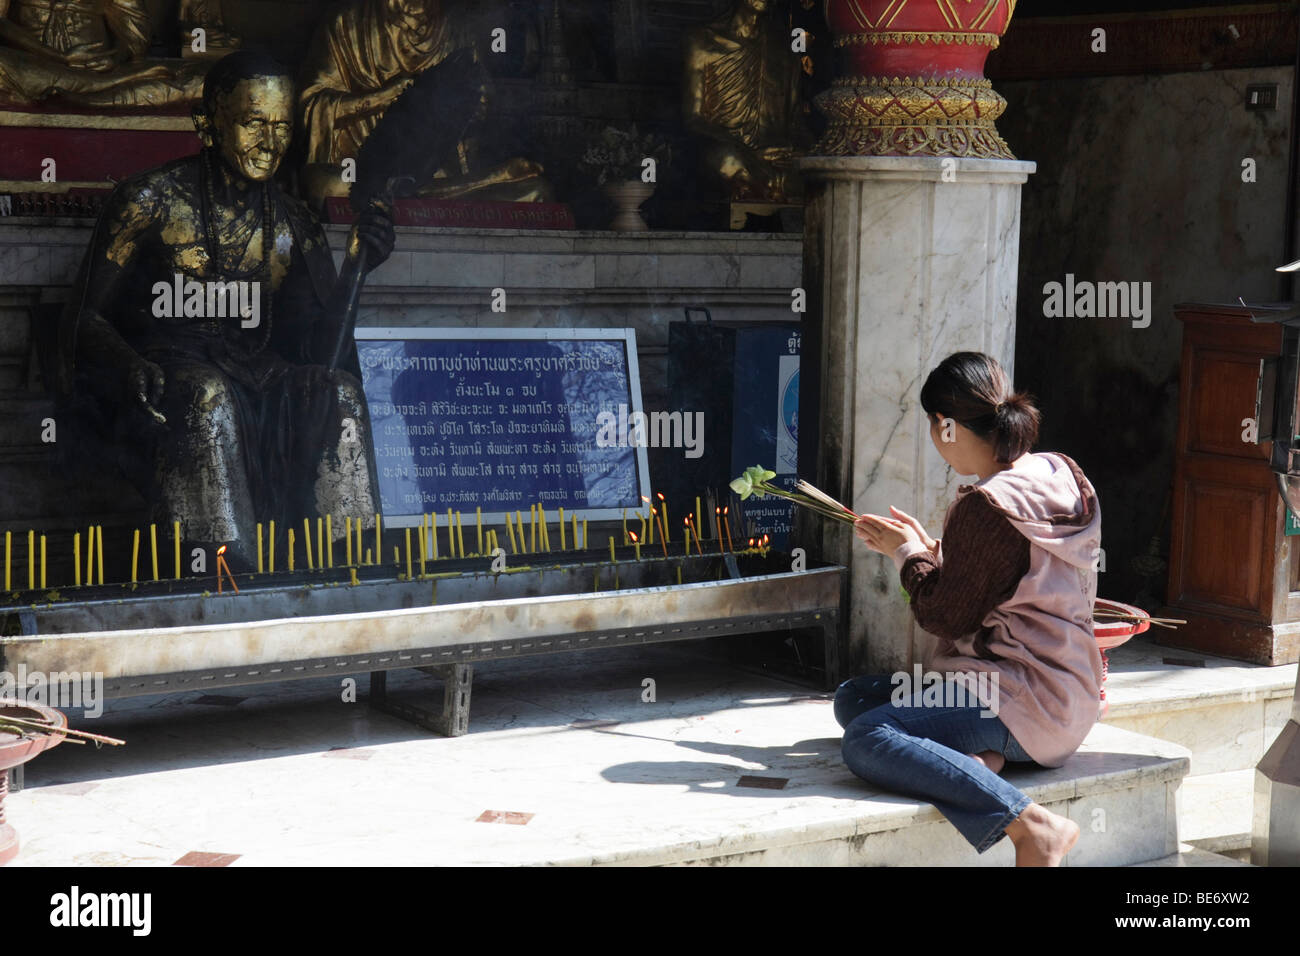 Buddhist praying with wooden flowers and incense, temple Wat Phra That Doi Suthep in Chiang Mai, Northern Thailand, Stock Photo